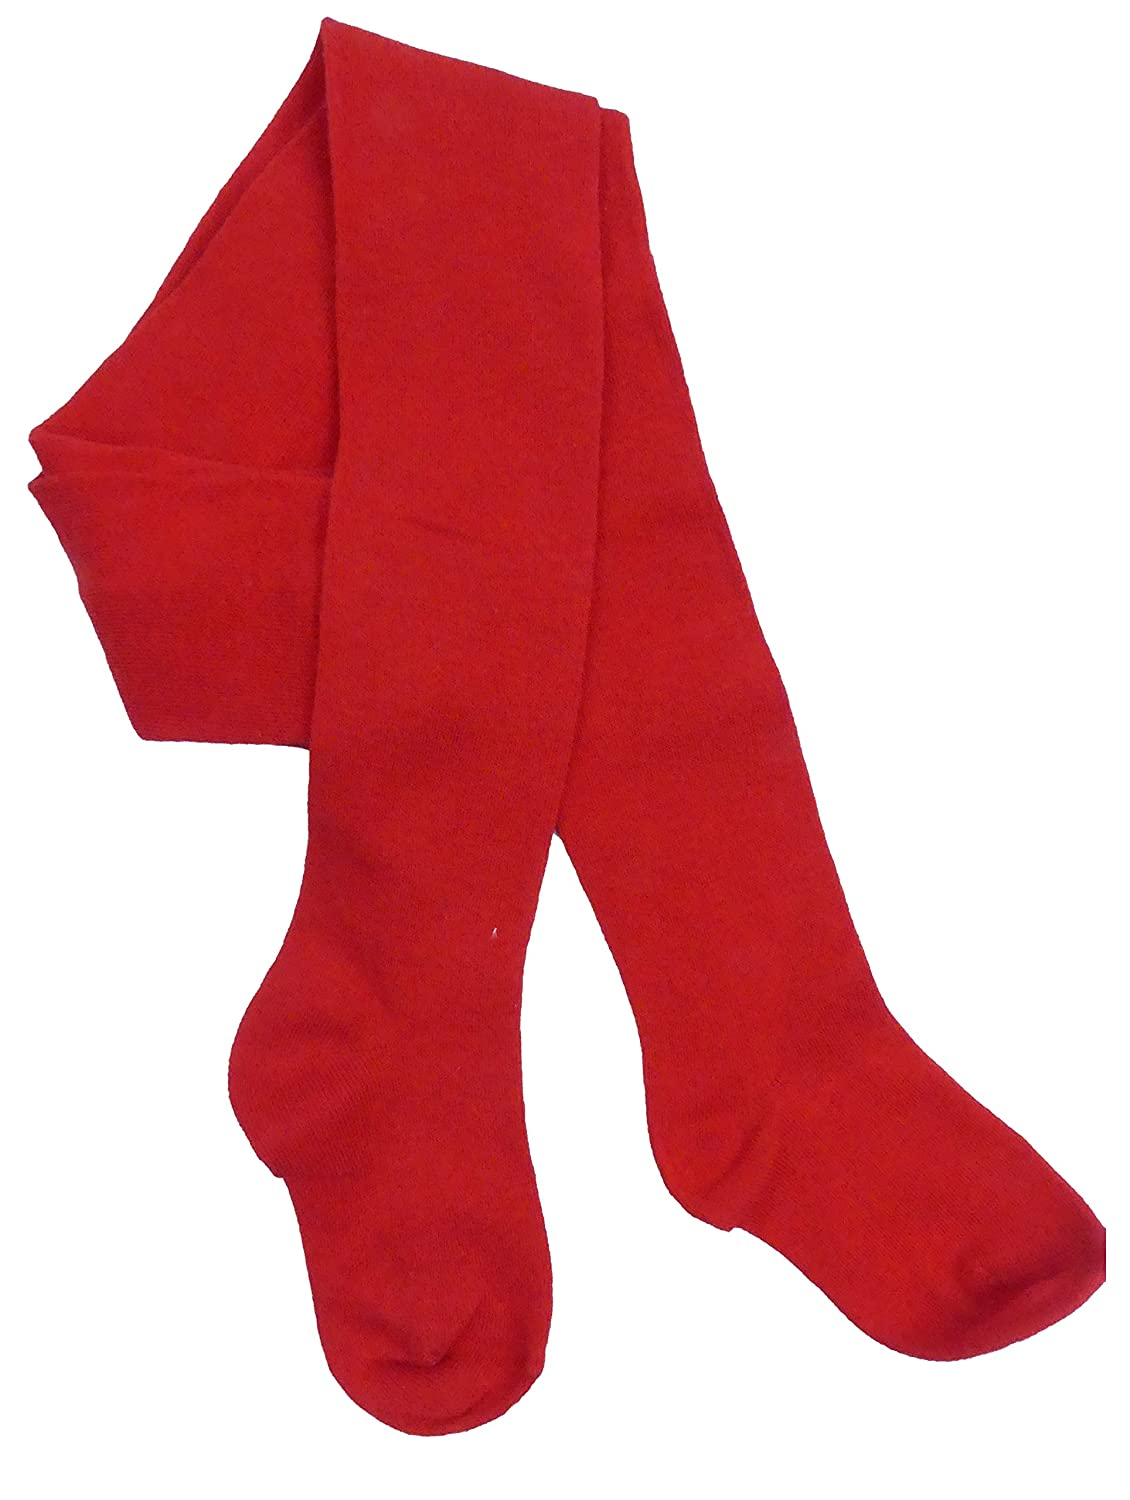 Girls Tights Cotton Rich with Elastane Great Range of Colours 2-3 to 9-10 years